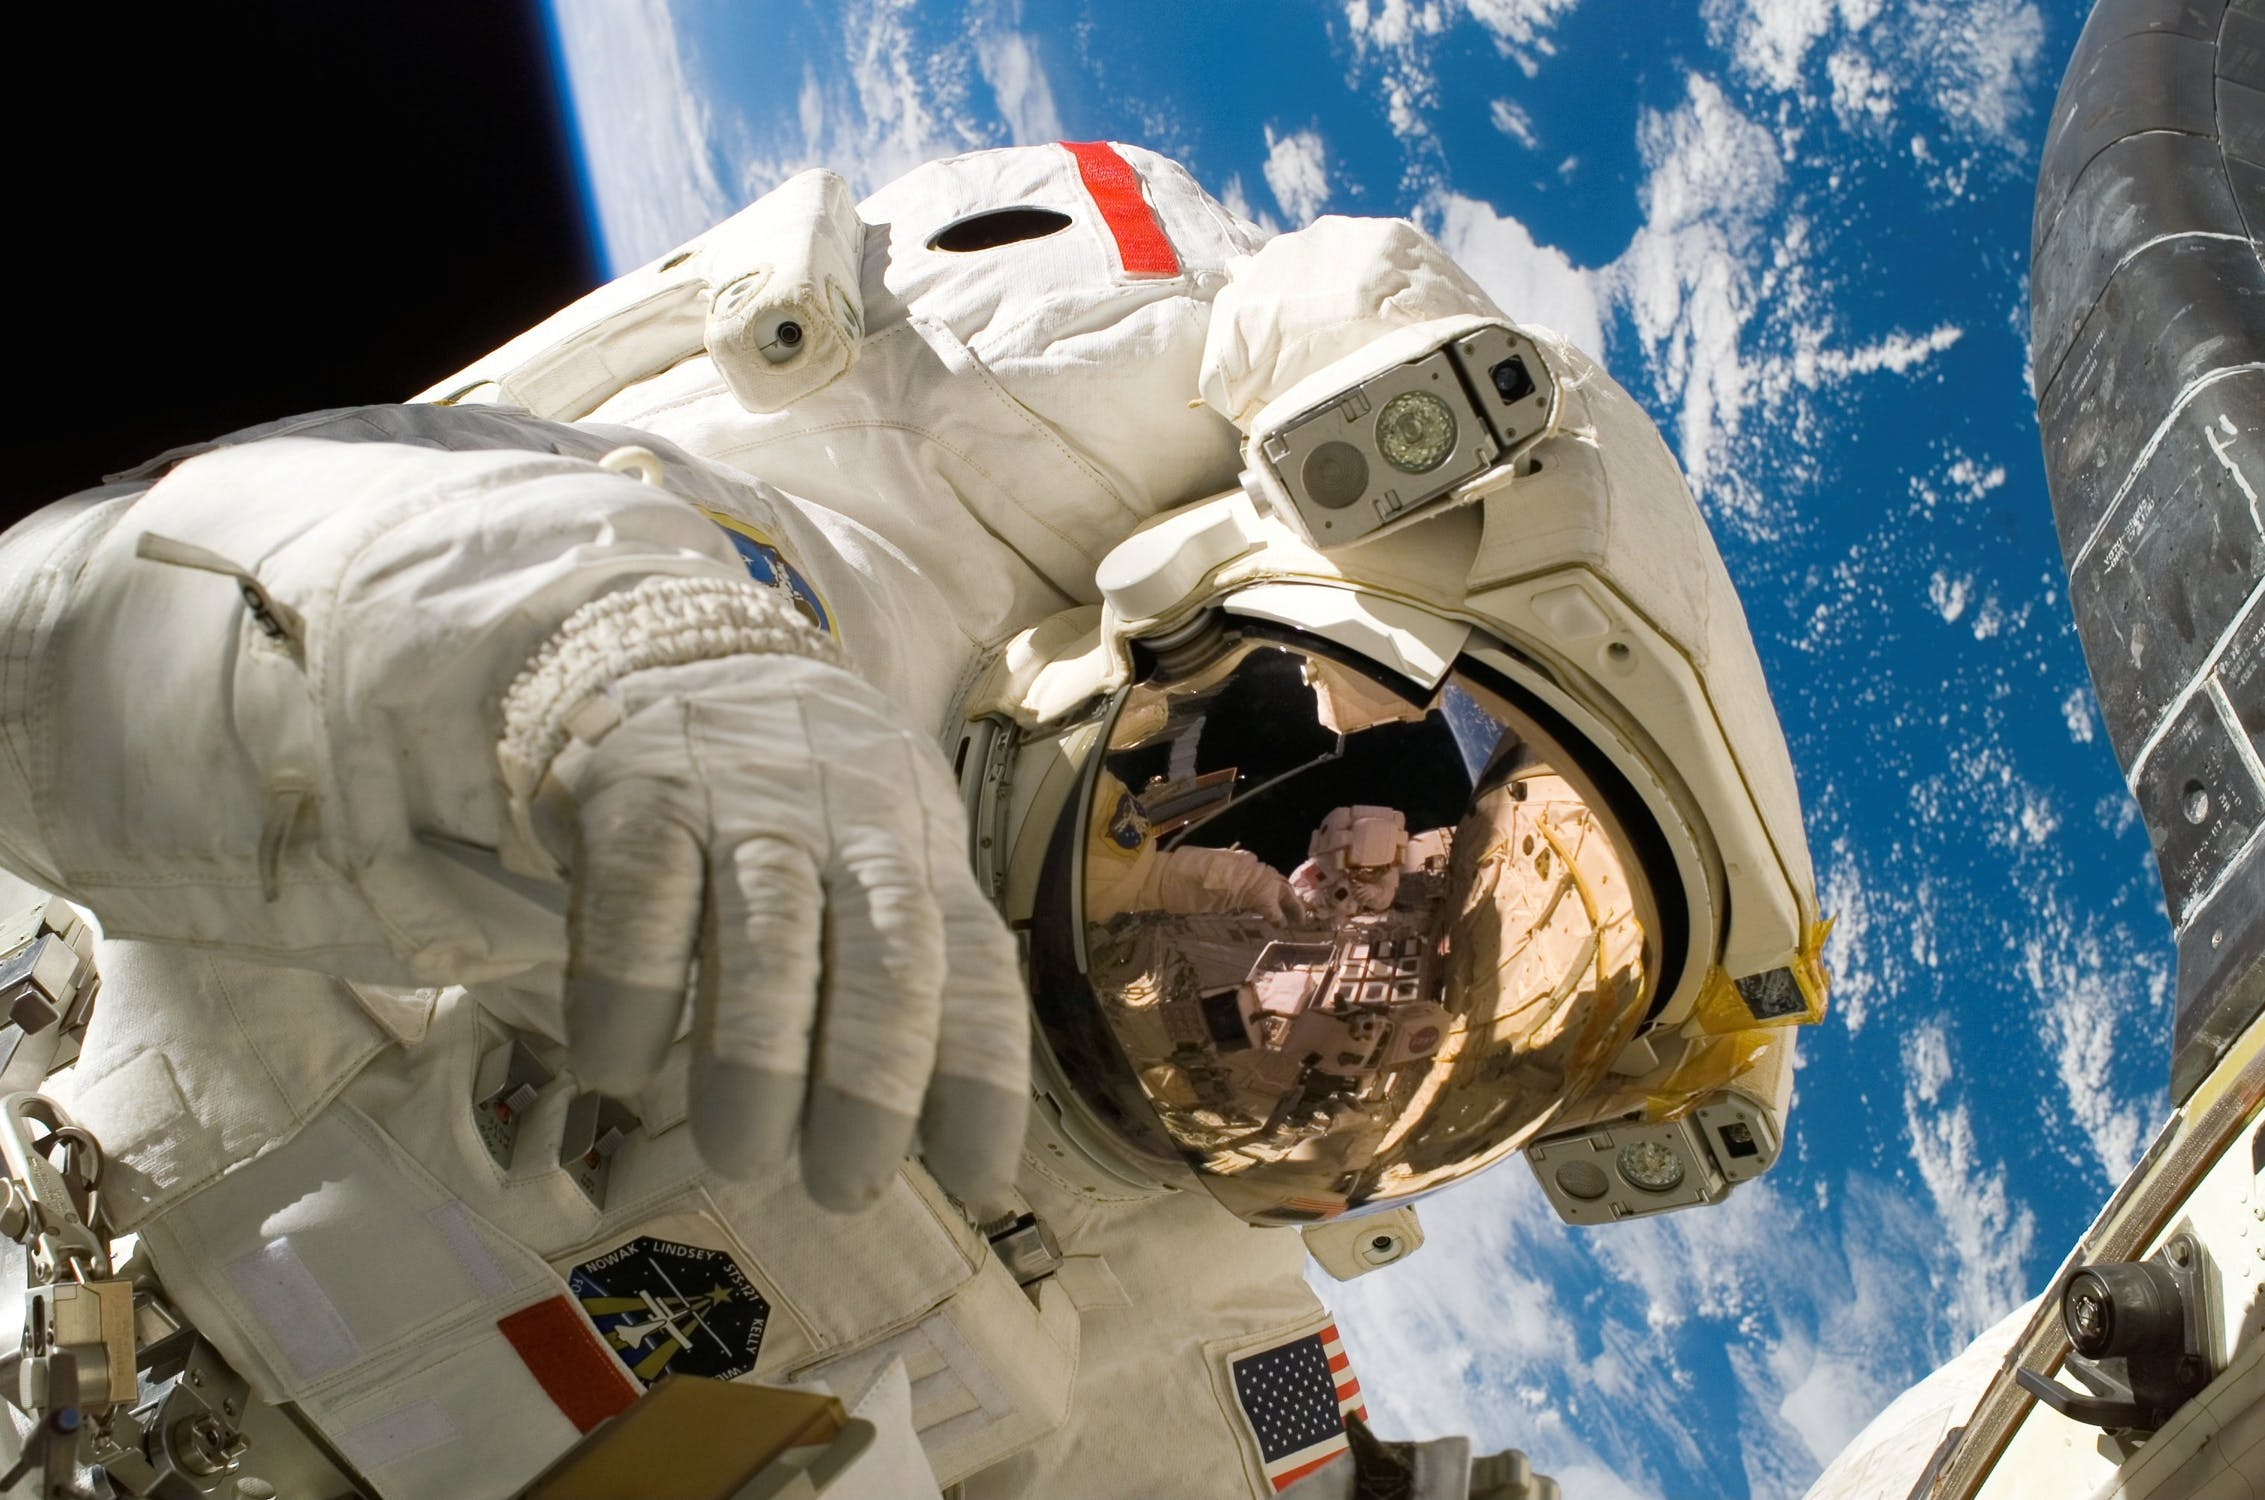 Boldly Insure Where No One Has Gone: The Space Industry